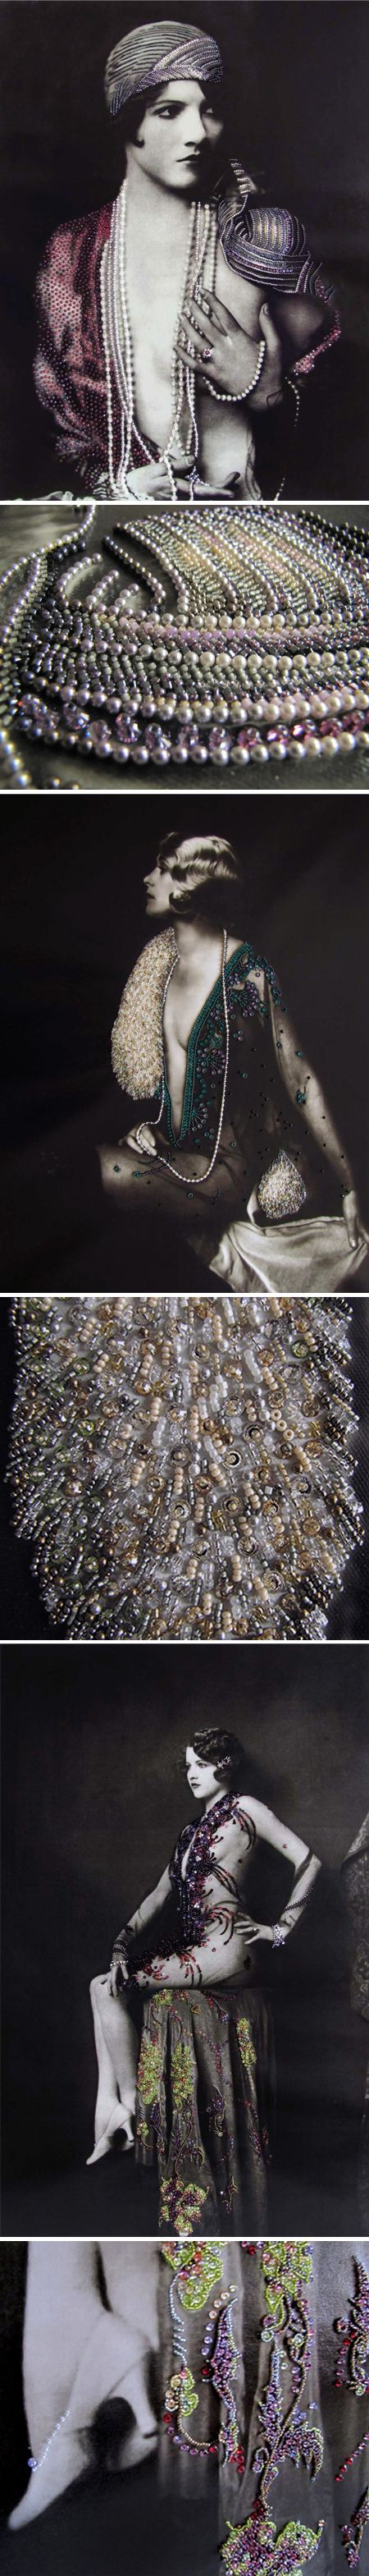 binka rigava covers 1920s photos, by alfred cheney johnston, in teeny tiny beads! (in a beautiful bar in new orleans) <3<3<3